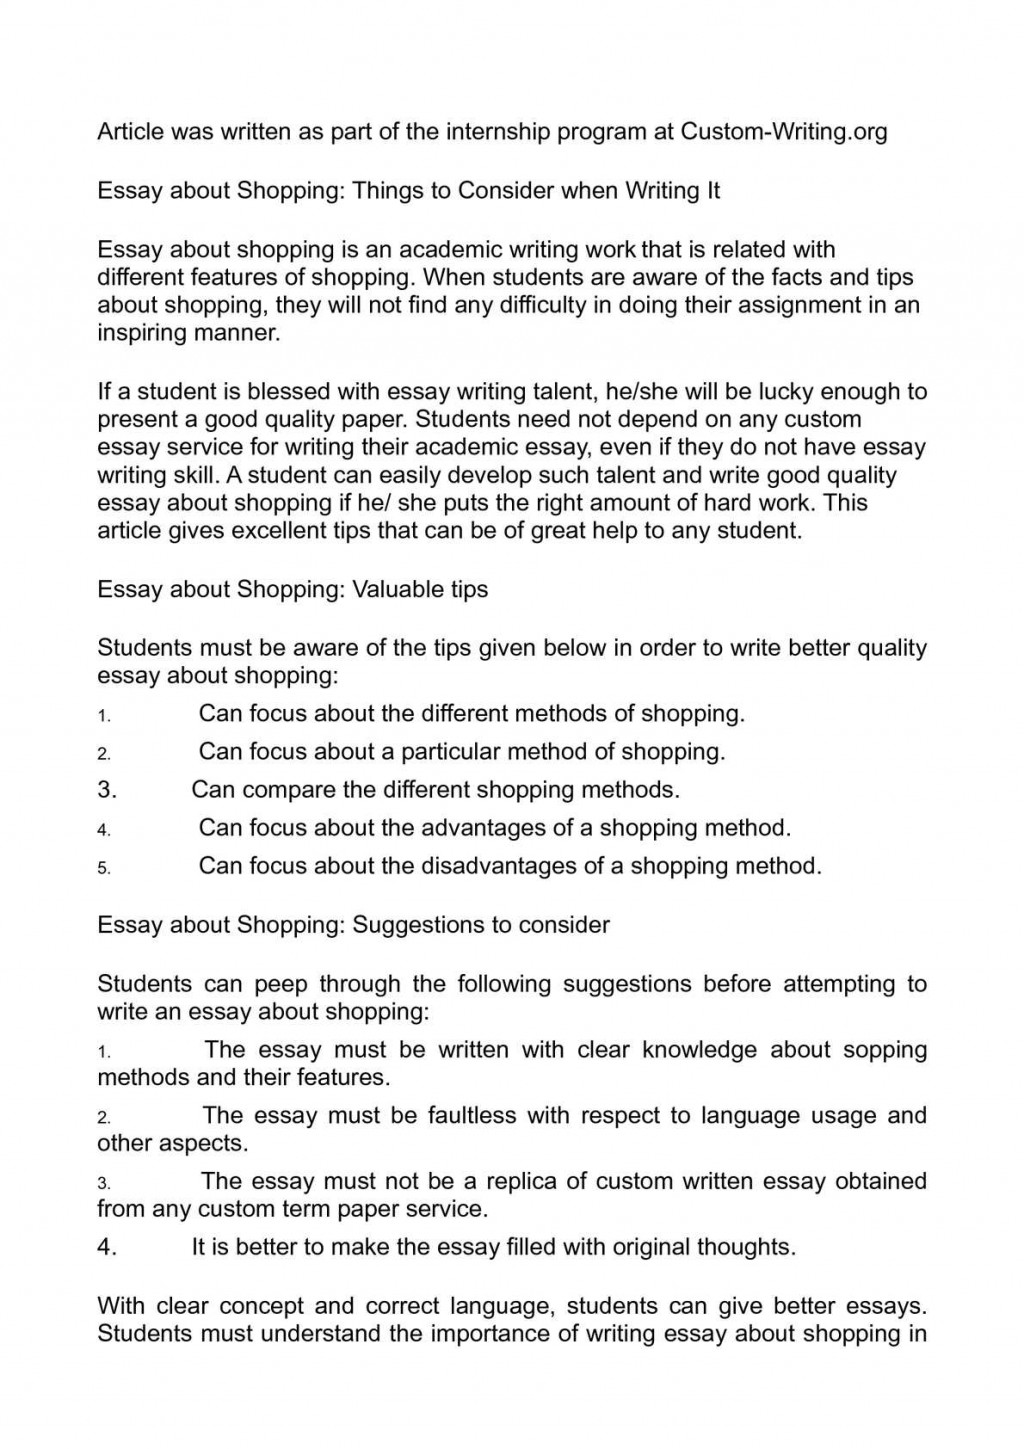 006 How To List Things In An Essay About Shopping Consider When Writing It Of Write Topics What Funny Random Informative Myself Yourself For College Fearsome Correct Way Best Large